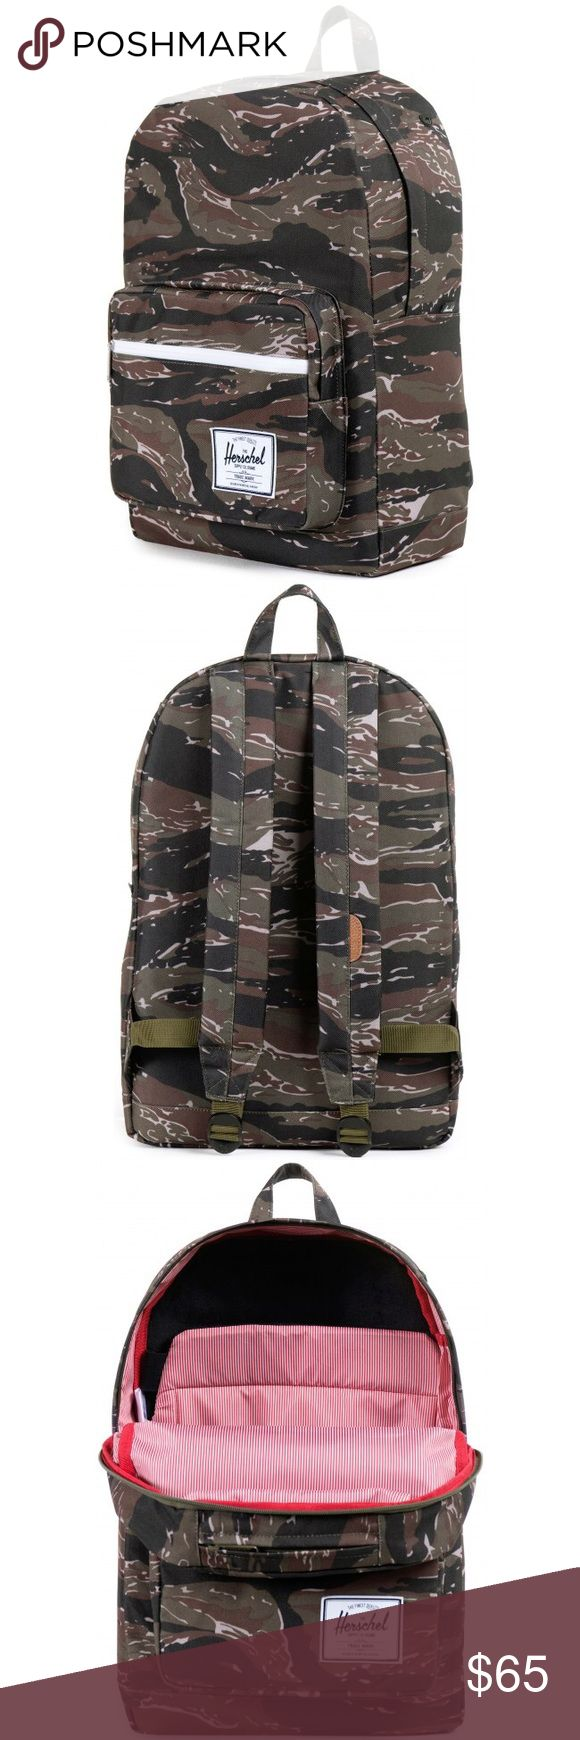 NWT HERSCHEL TIGER CAMO POP QUIZ BACKPACK Herschel's quintessential back to school bag that features an extended assortment of pockets and organizers.  • Fully lined with our signature coated poly fabric • Fully padded fleece lined up to 15˝ laptop sleeve pocket • Front pocket with internal mesh organizers and key clip with exterior waterproof zipper detail • Eco-friendly or self fabric reinforced bottom • Fleece lined sunglass/accessory pocket • Internal media pocket • 20L volume capacity…